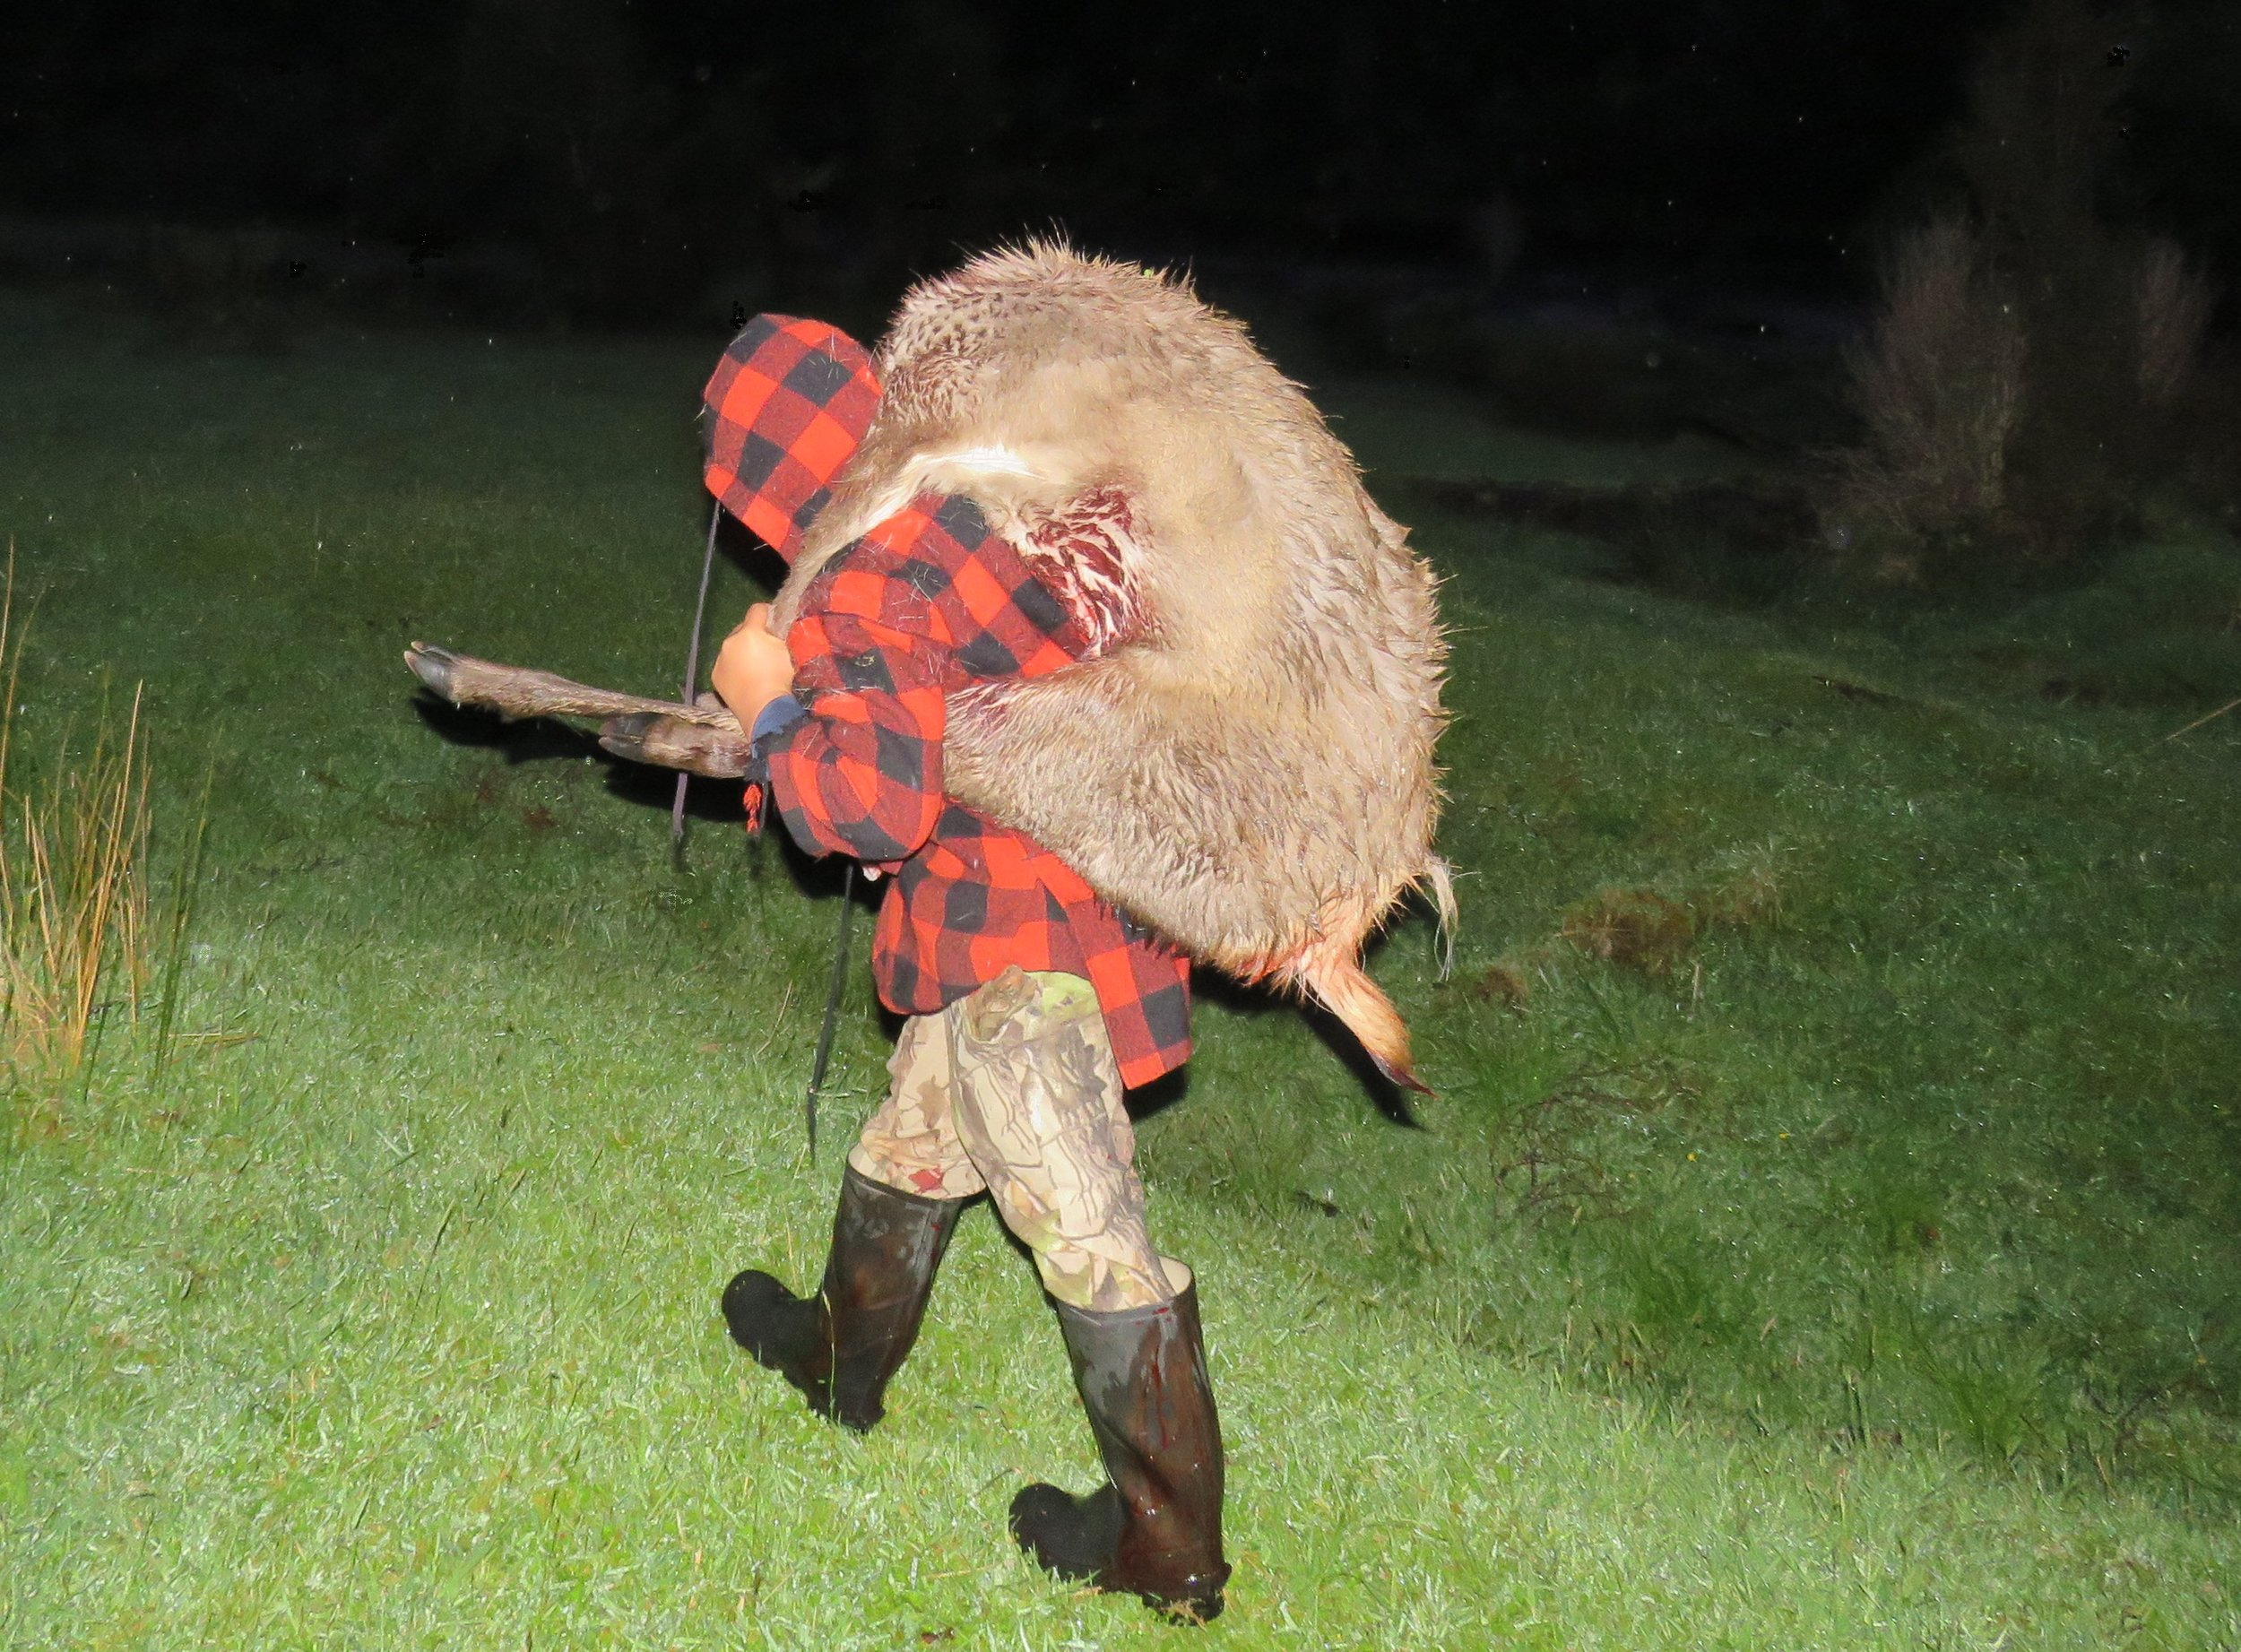 George put in a mammoth effort to help get the deer back to camp.